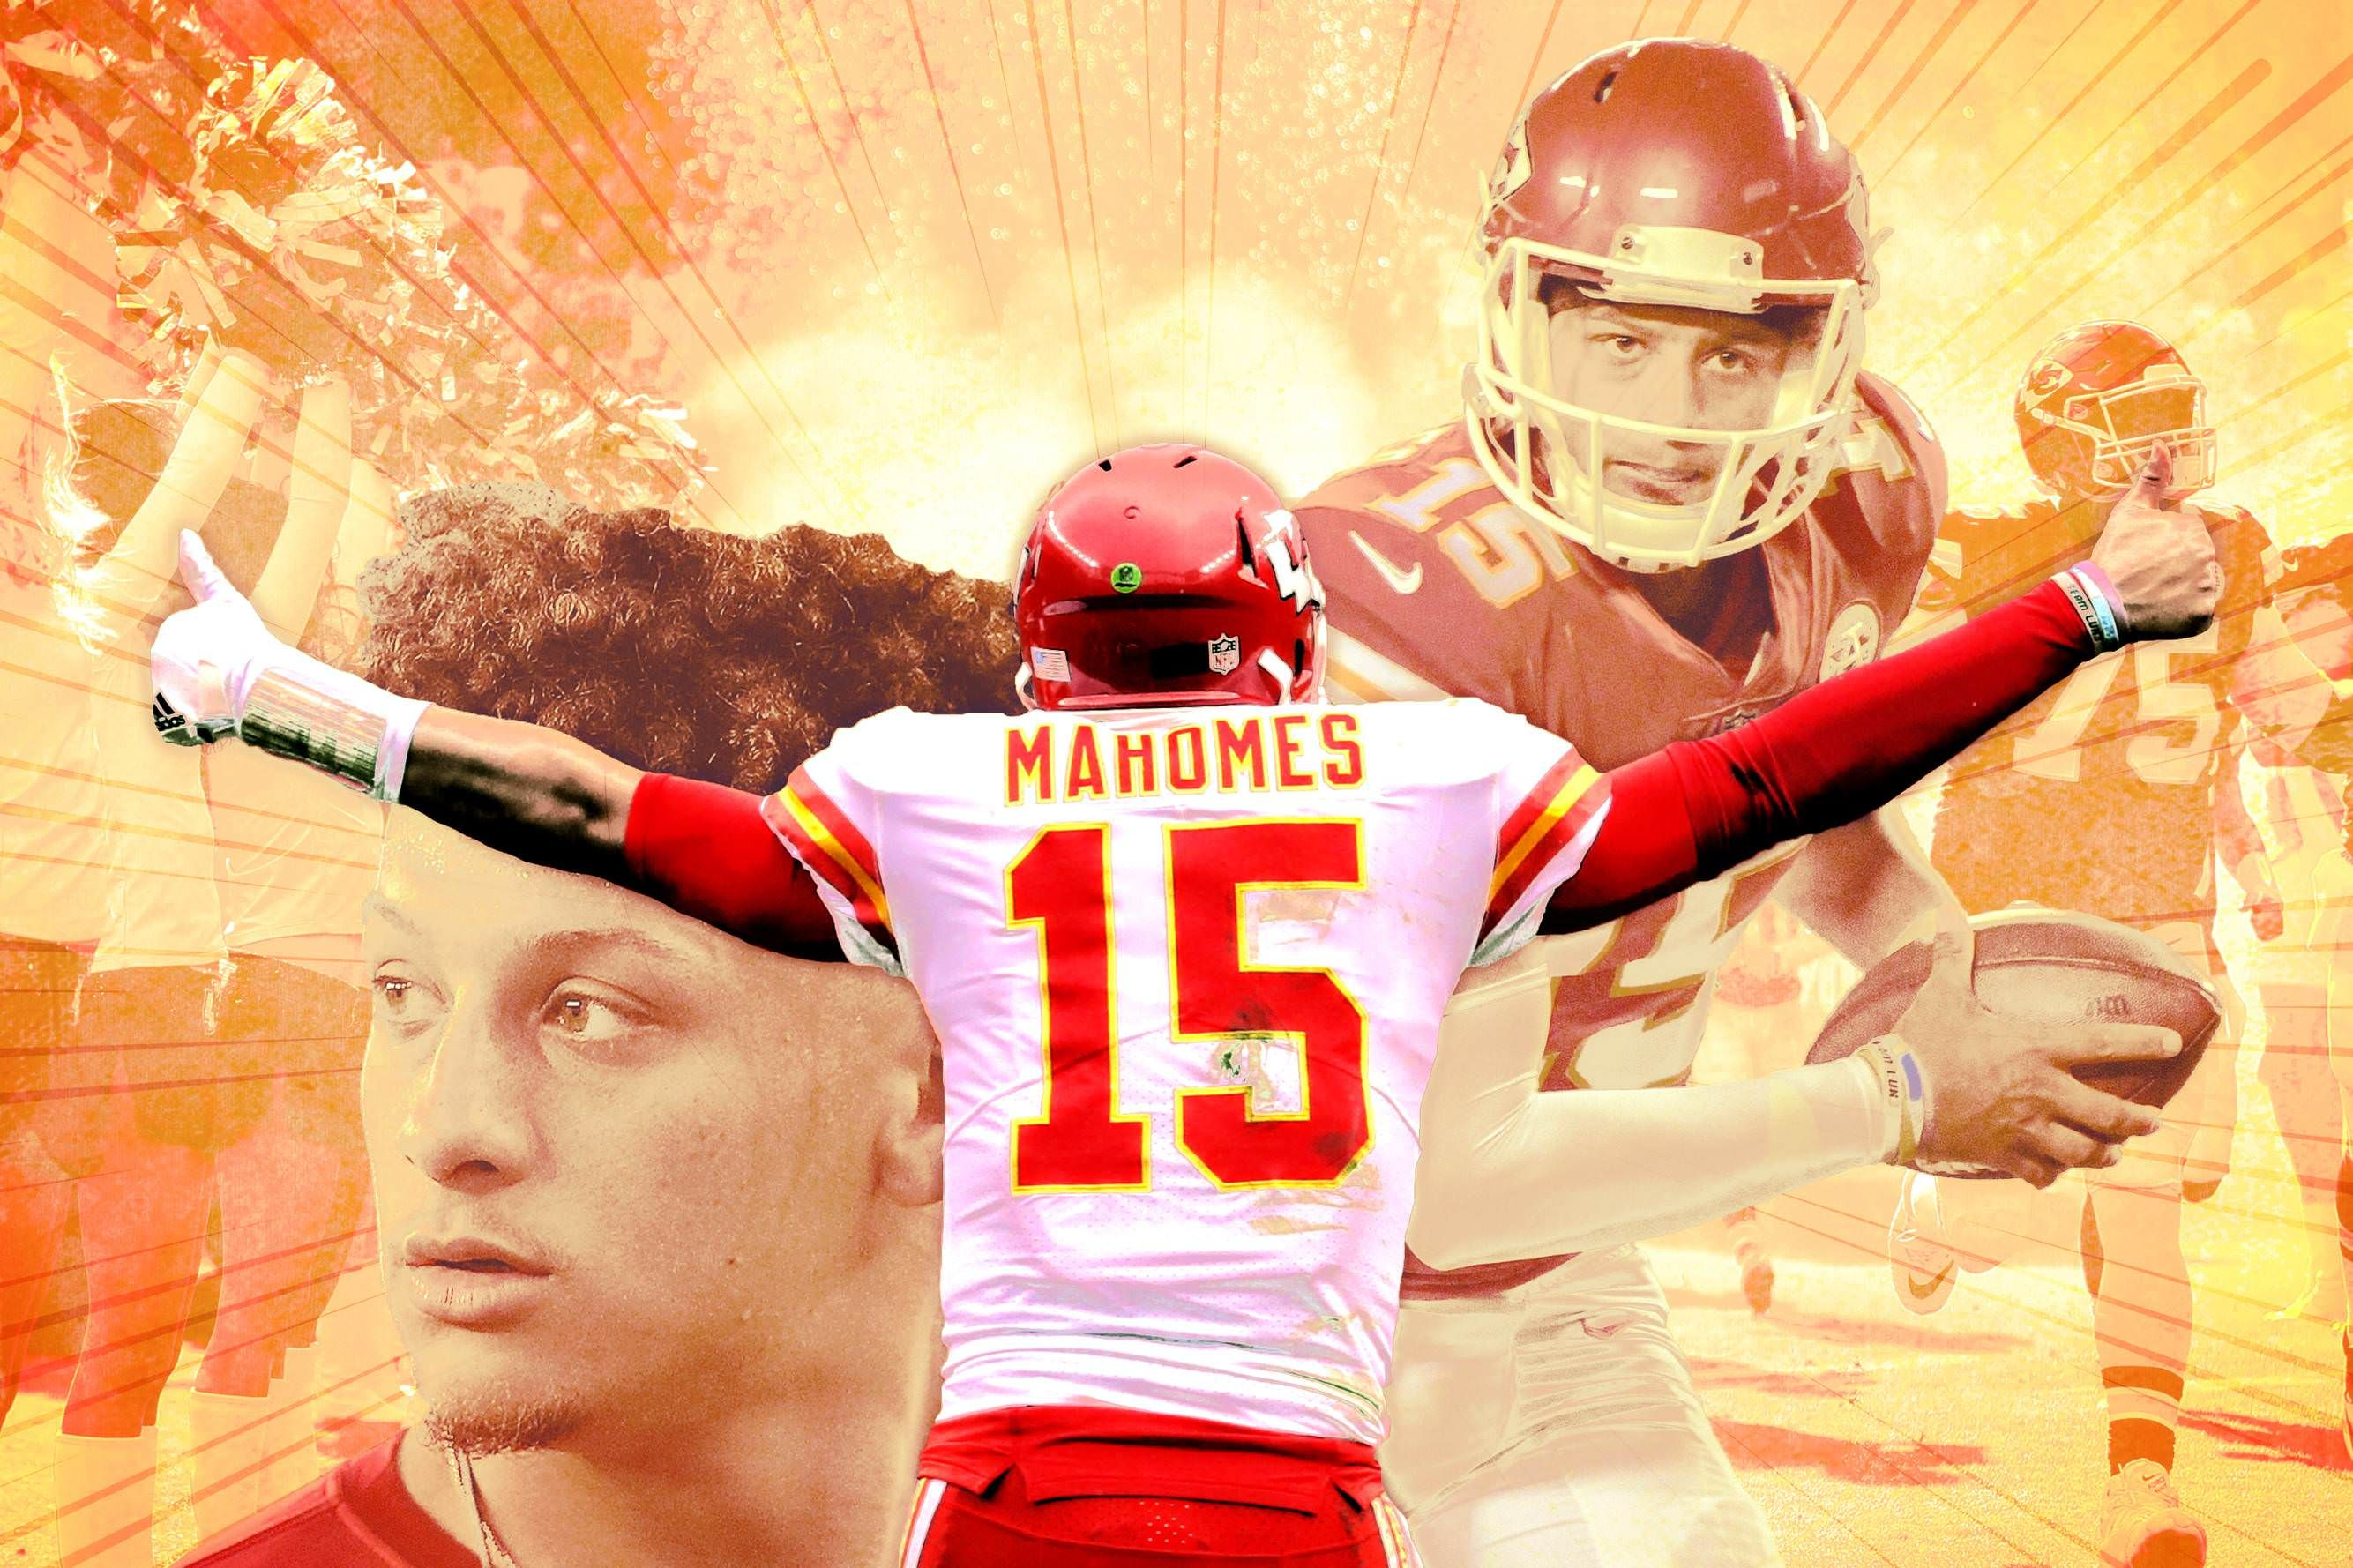 Image Result For Patrick Mahomes Wallpaper Kansas City Chiefs Kansas City Chiefs Football Kansas City Chiefs Logo